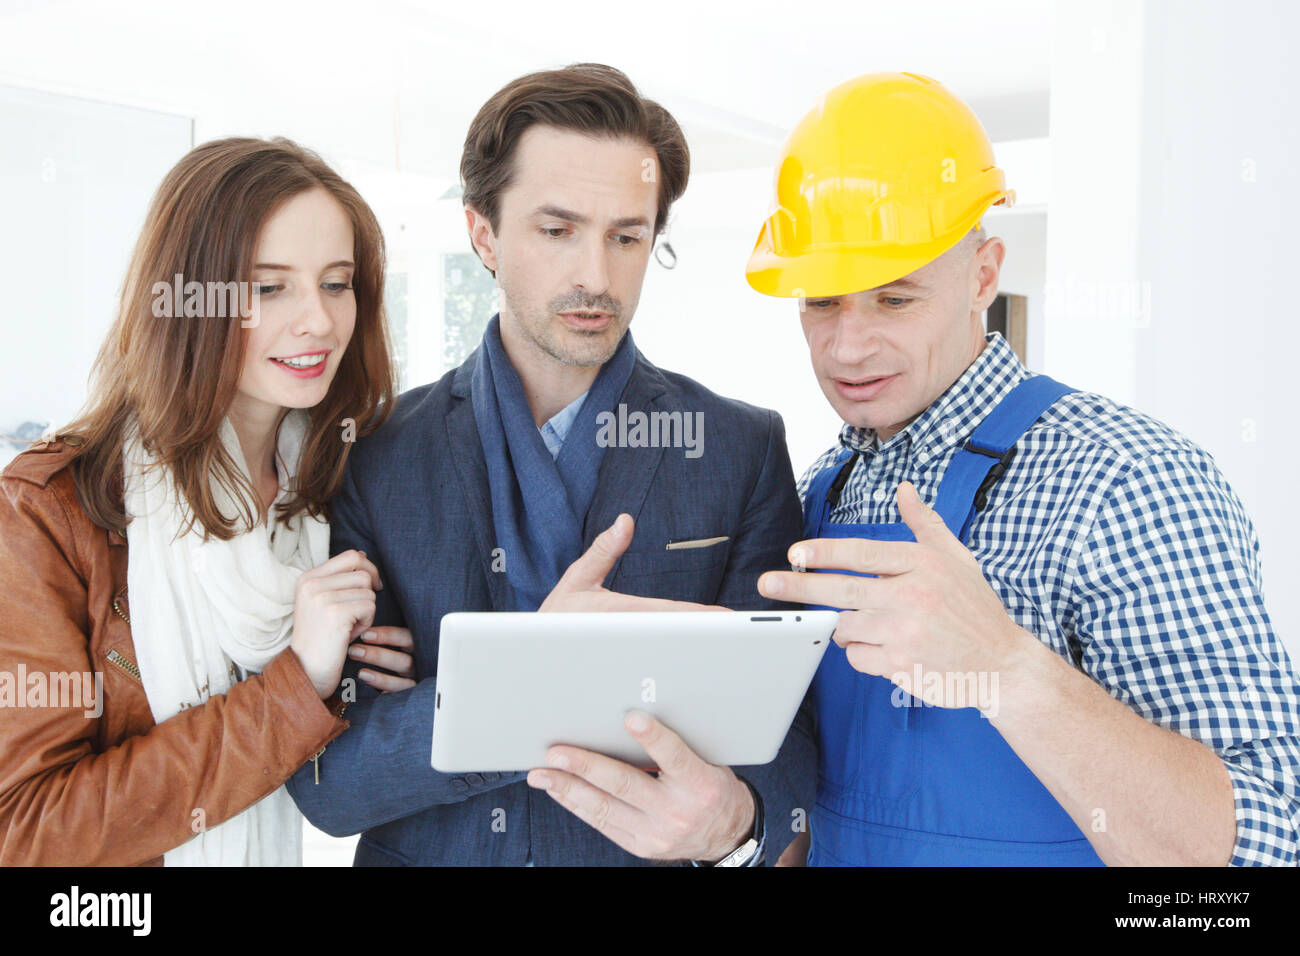 Worker and couple using tablet pc at construction site - Stock Image